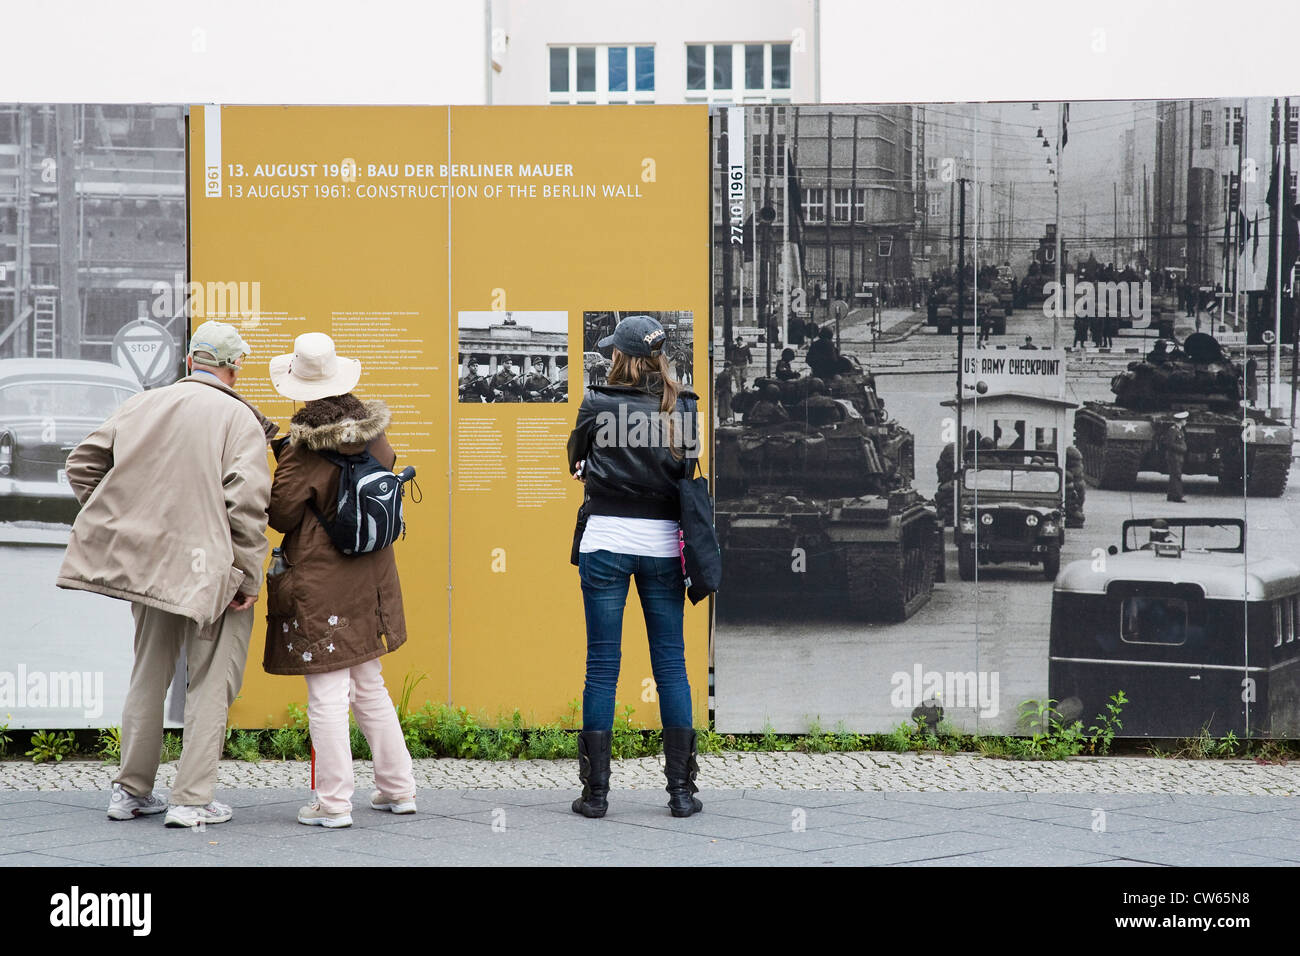 Europe, Germany, Brandenburg, Berlin, Checkpoint Charlie, outdoor exhibition about the Wall of Berlin history - Stock Image